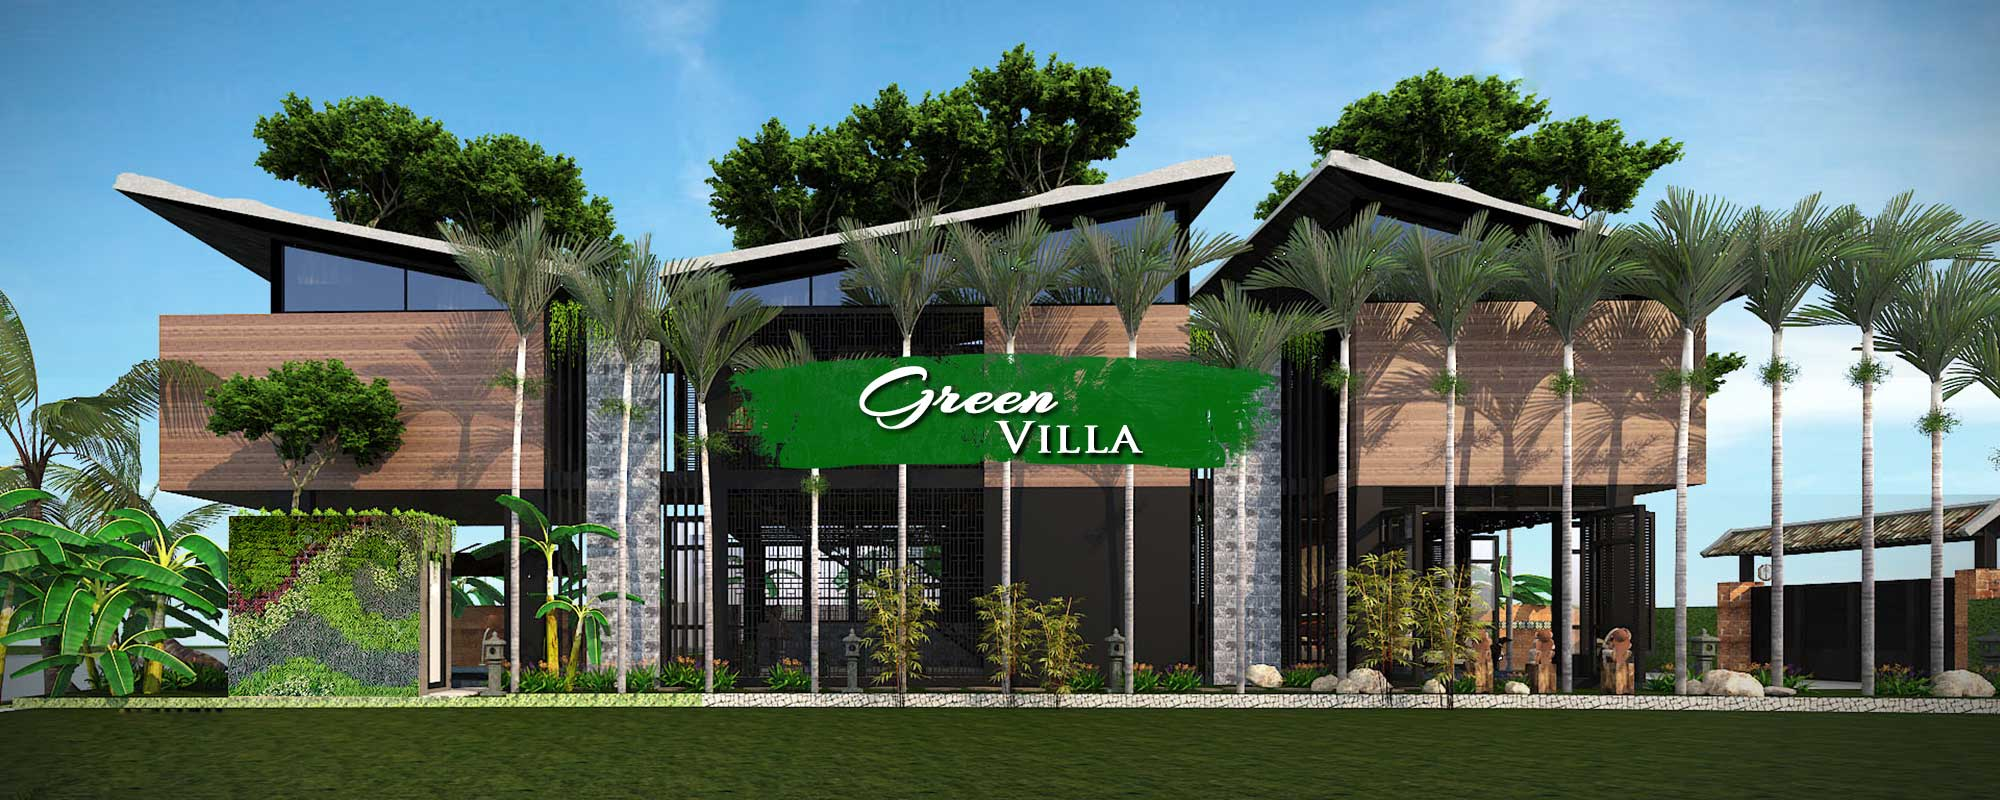 Green Villa India Gurgaon Noida Delhi NCR